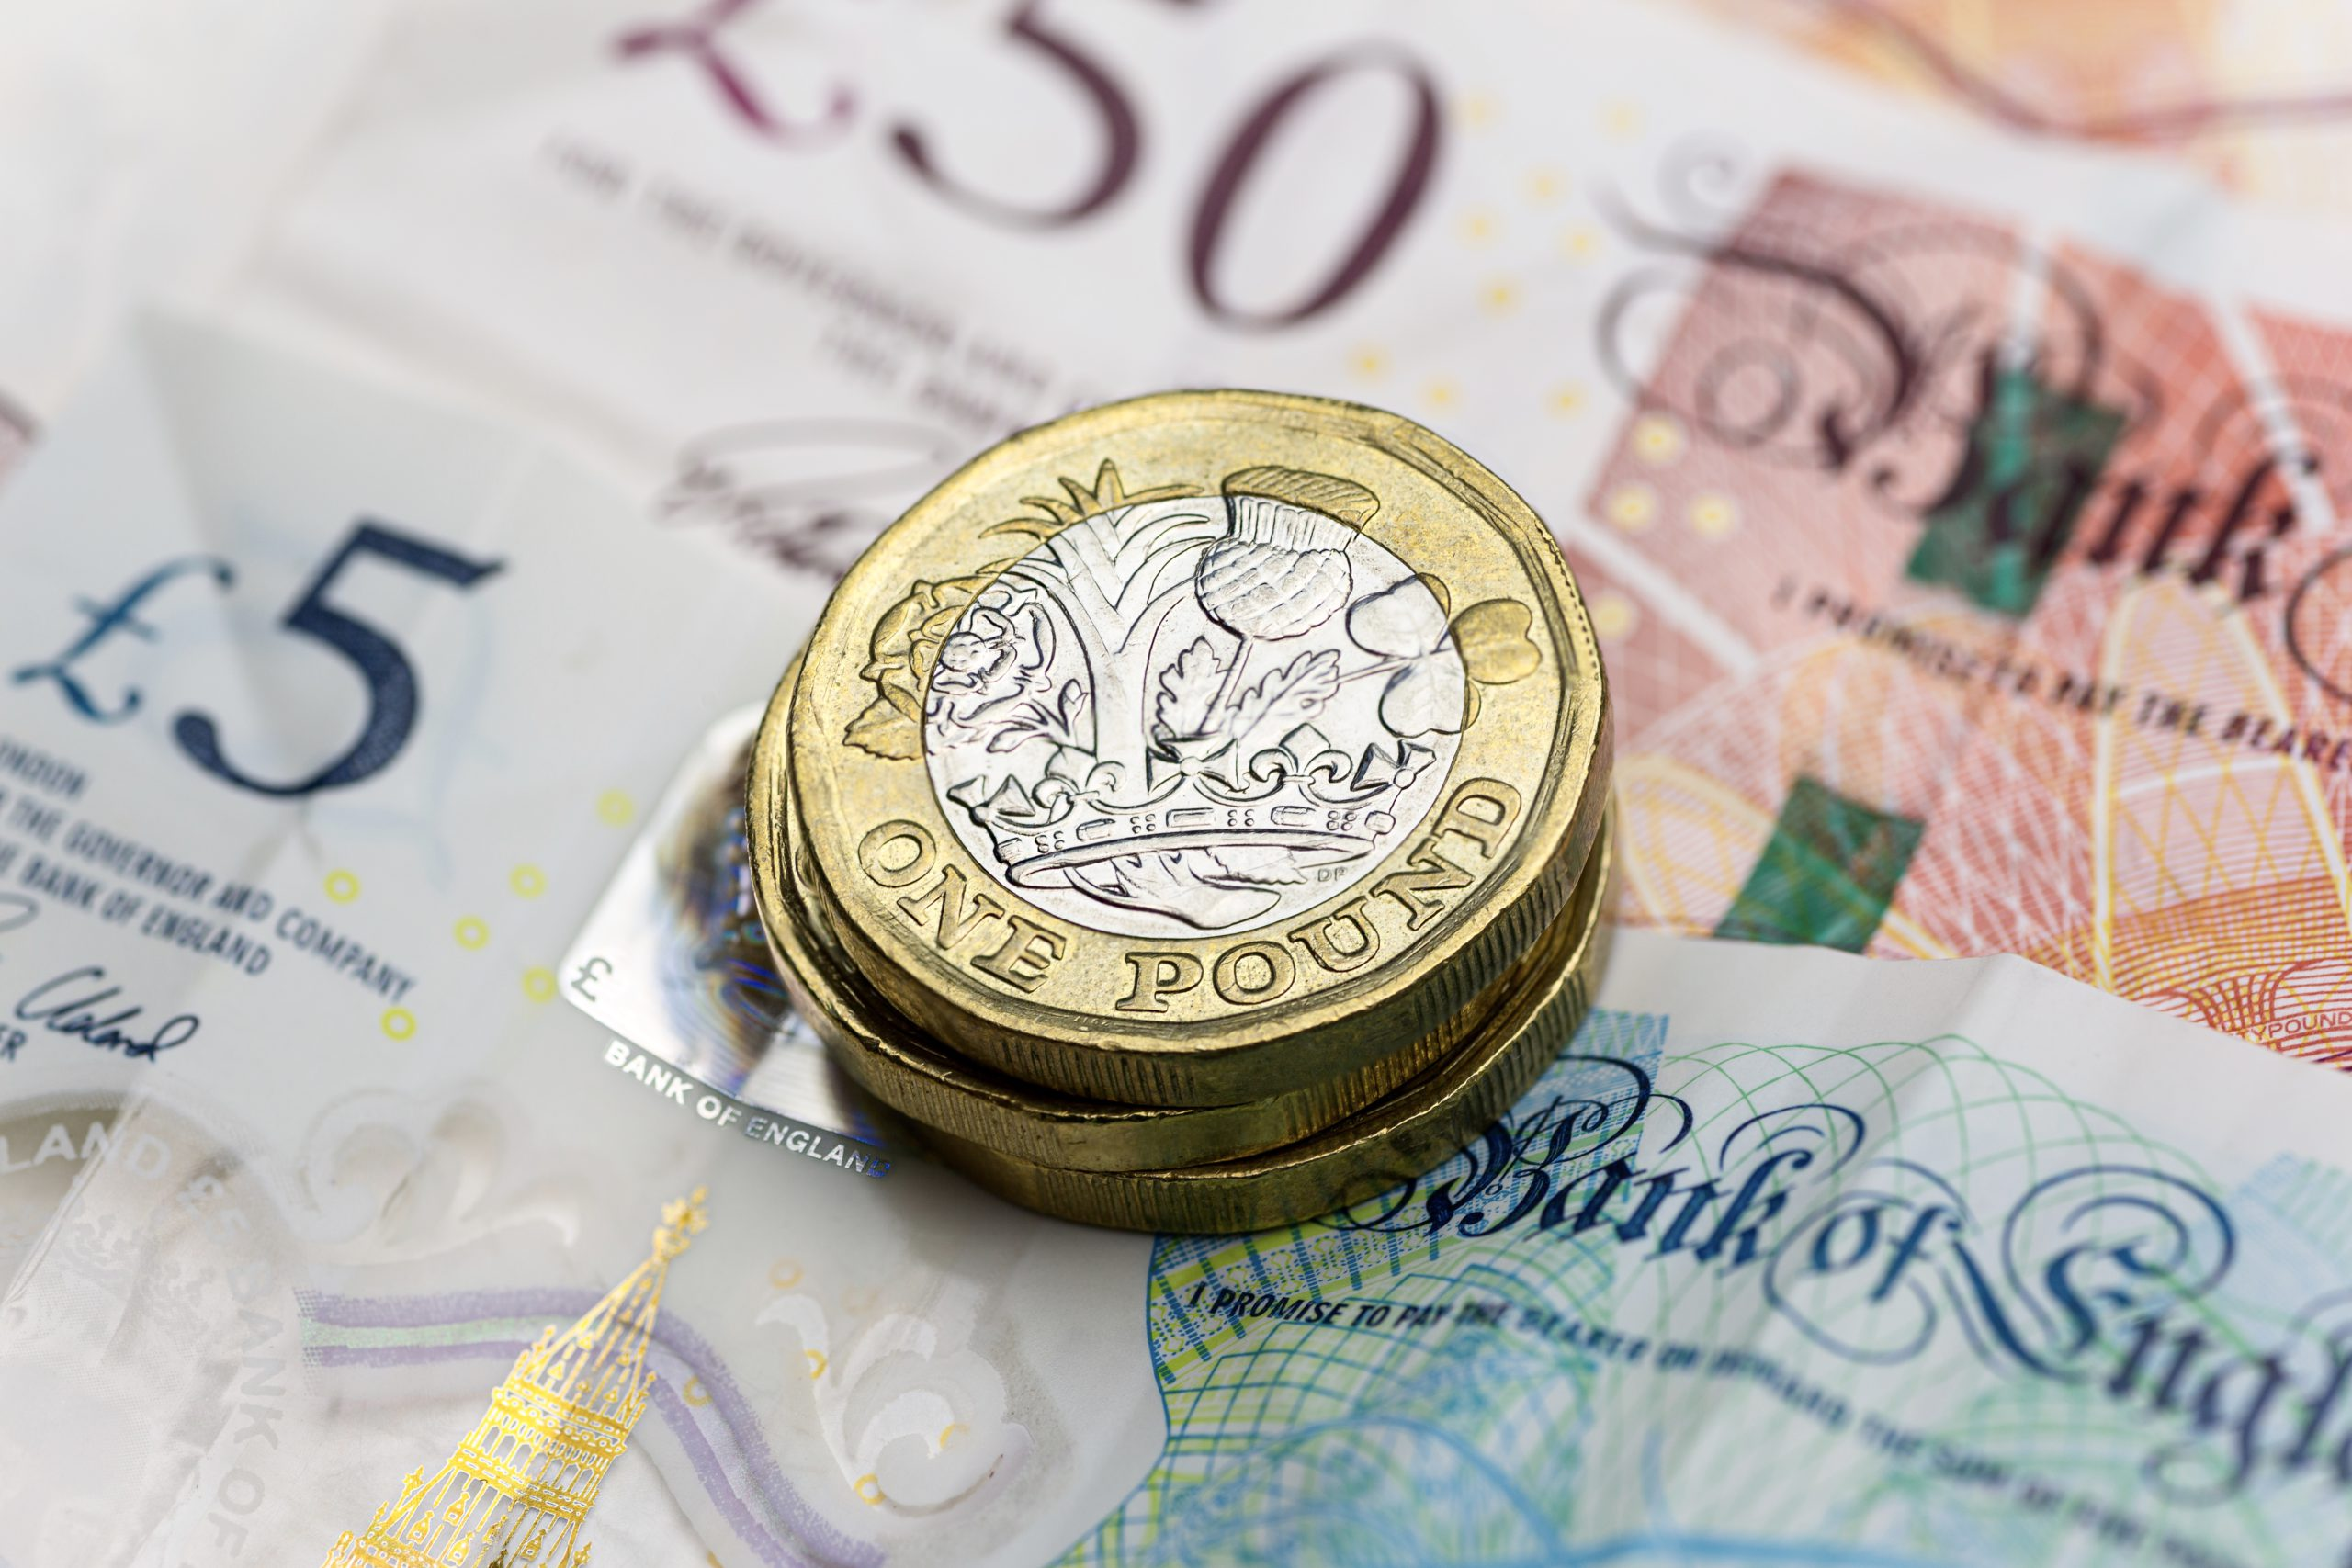 14/05 – Sterling holds on as US retail sales in focus today